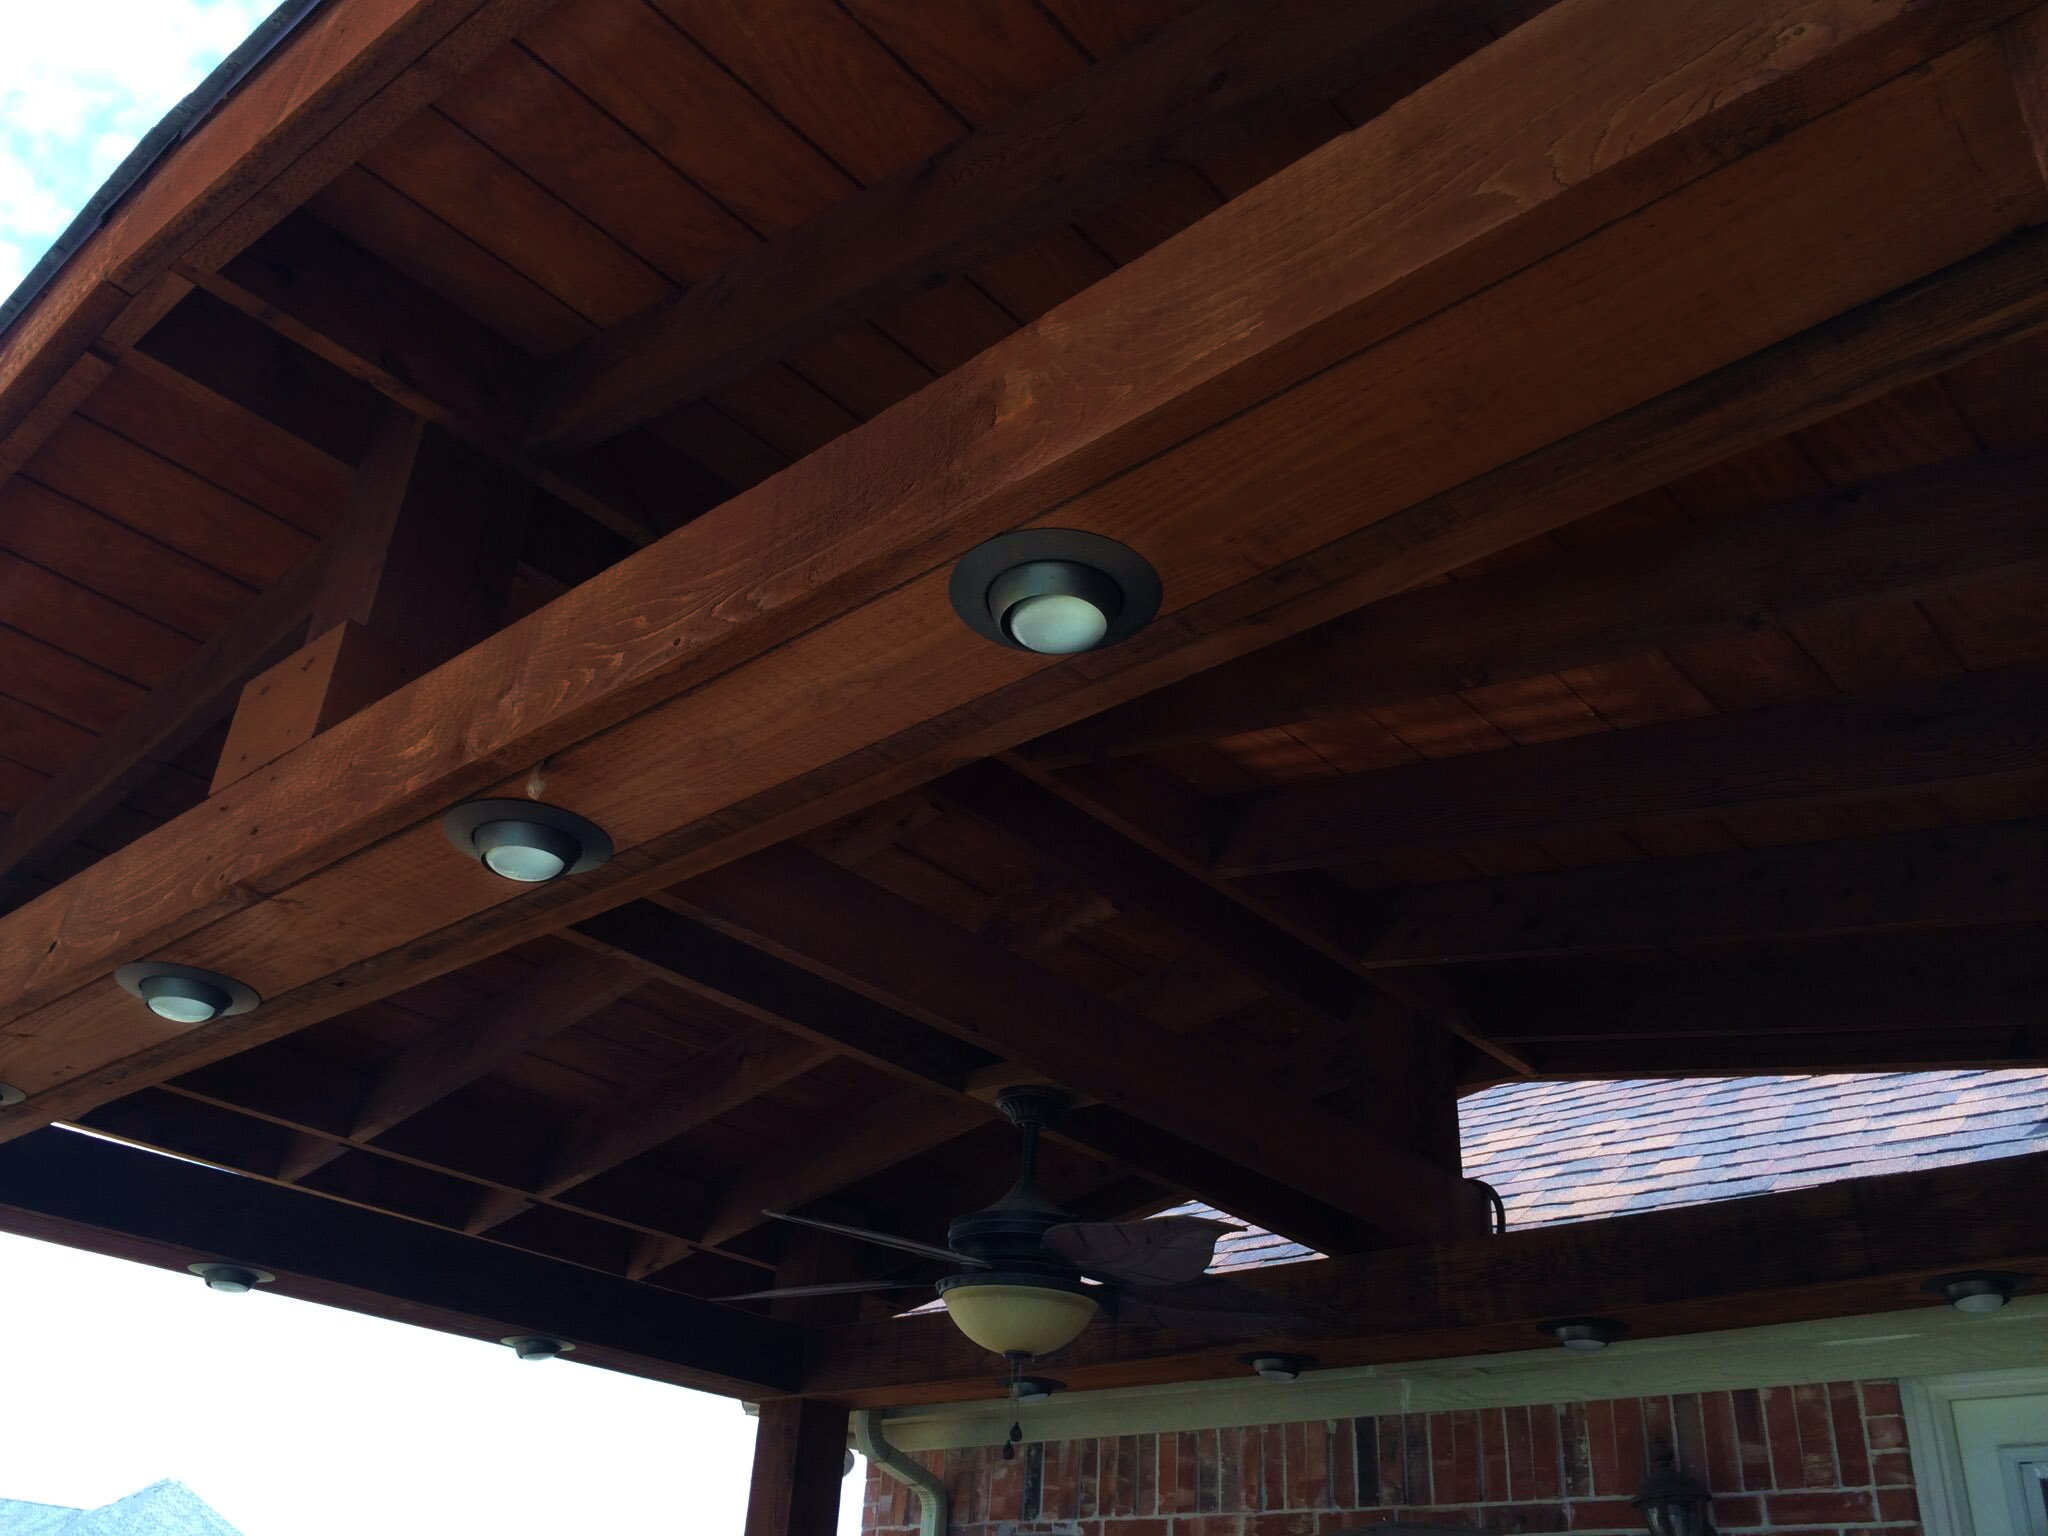 Shingled Patio Cover View From Underneath